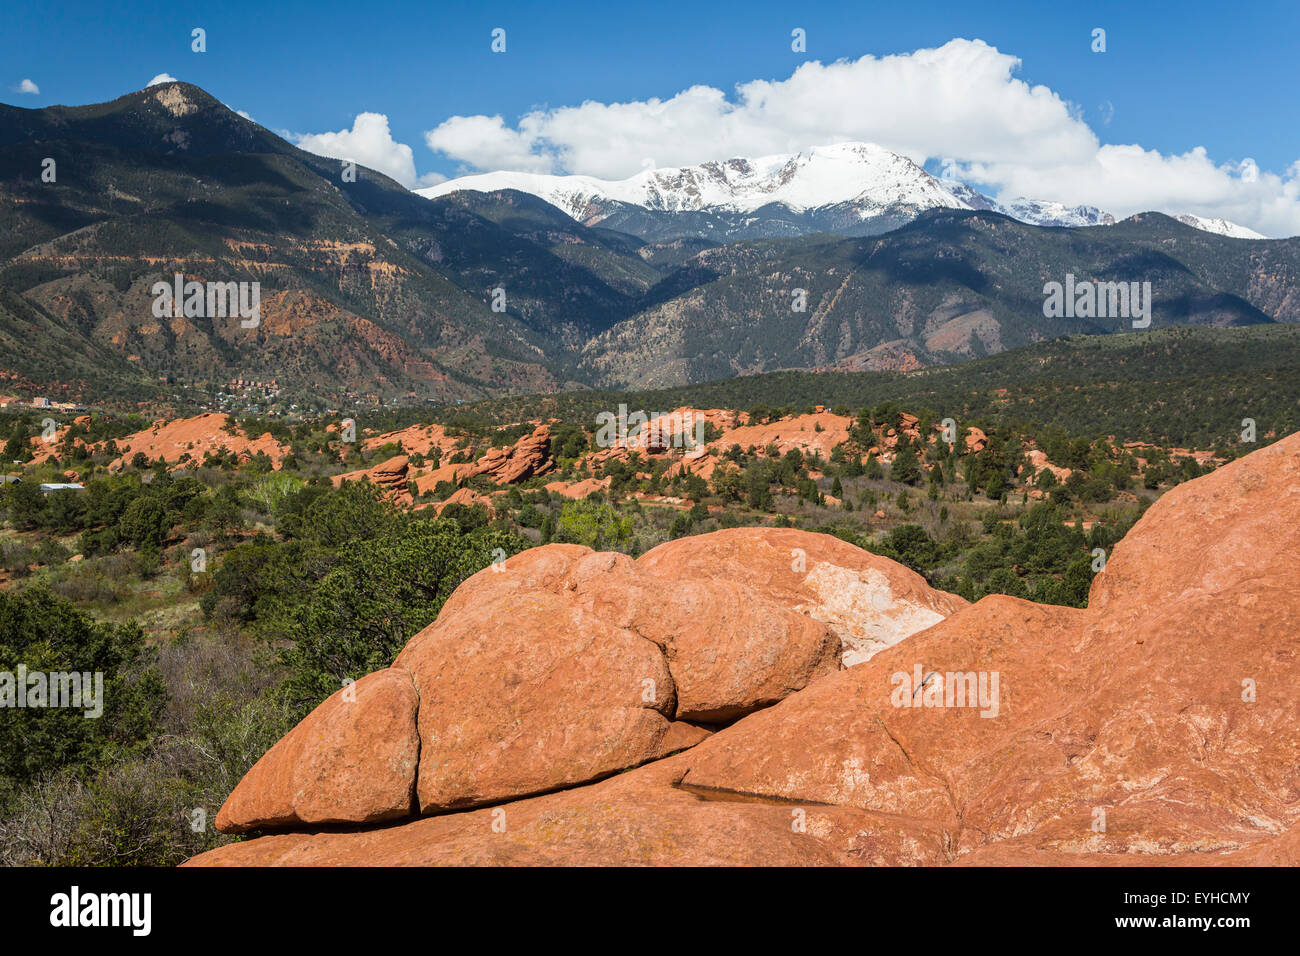 The rock formations of  Garden of the Gods National Natural Landmark and Pike's Peak, near Colorado Springs, - Stock Image